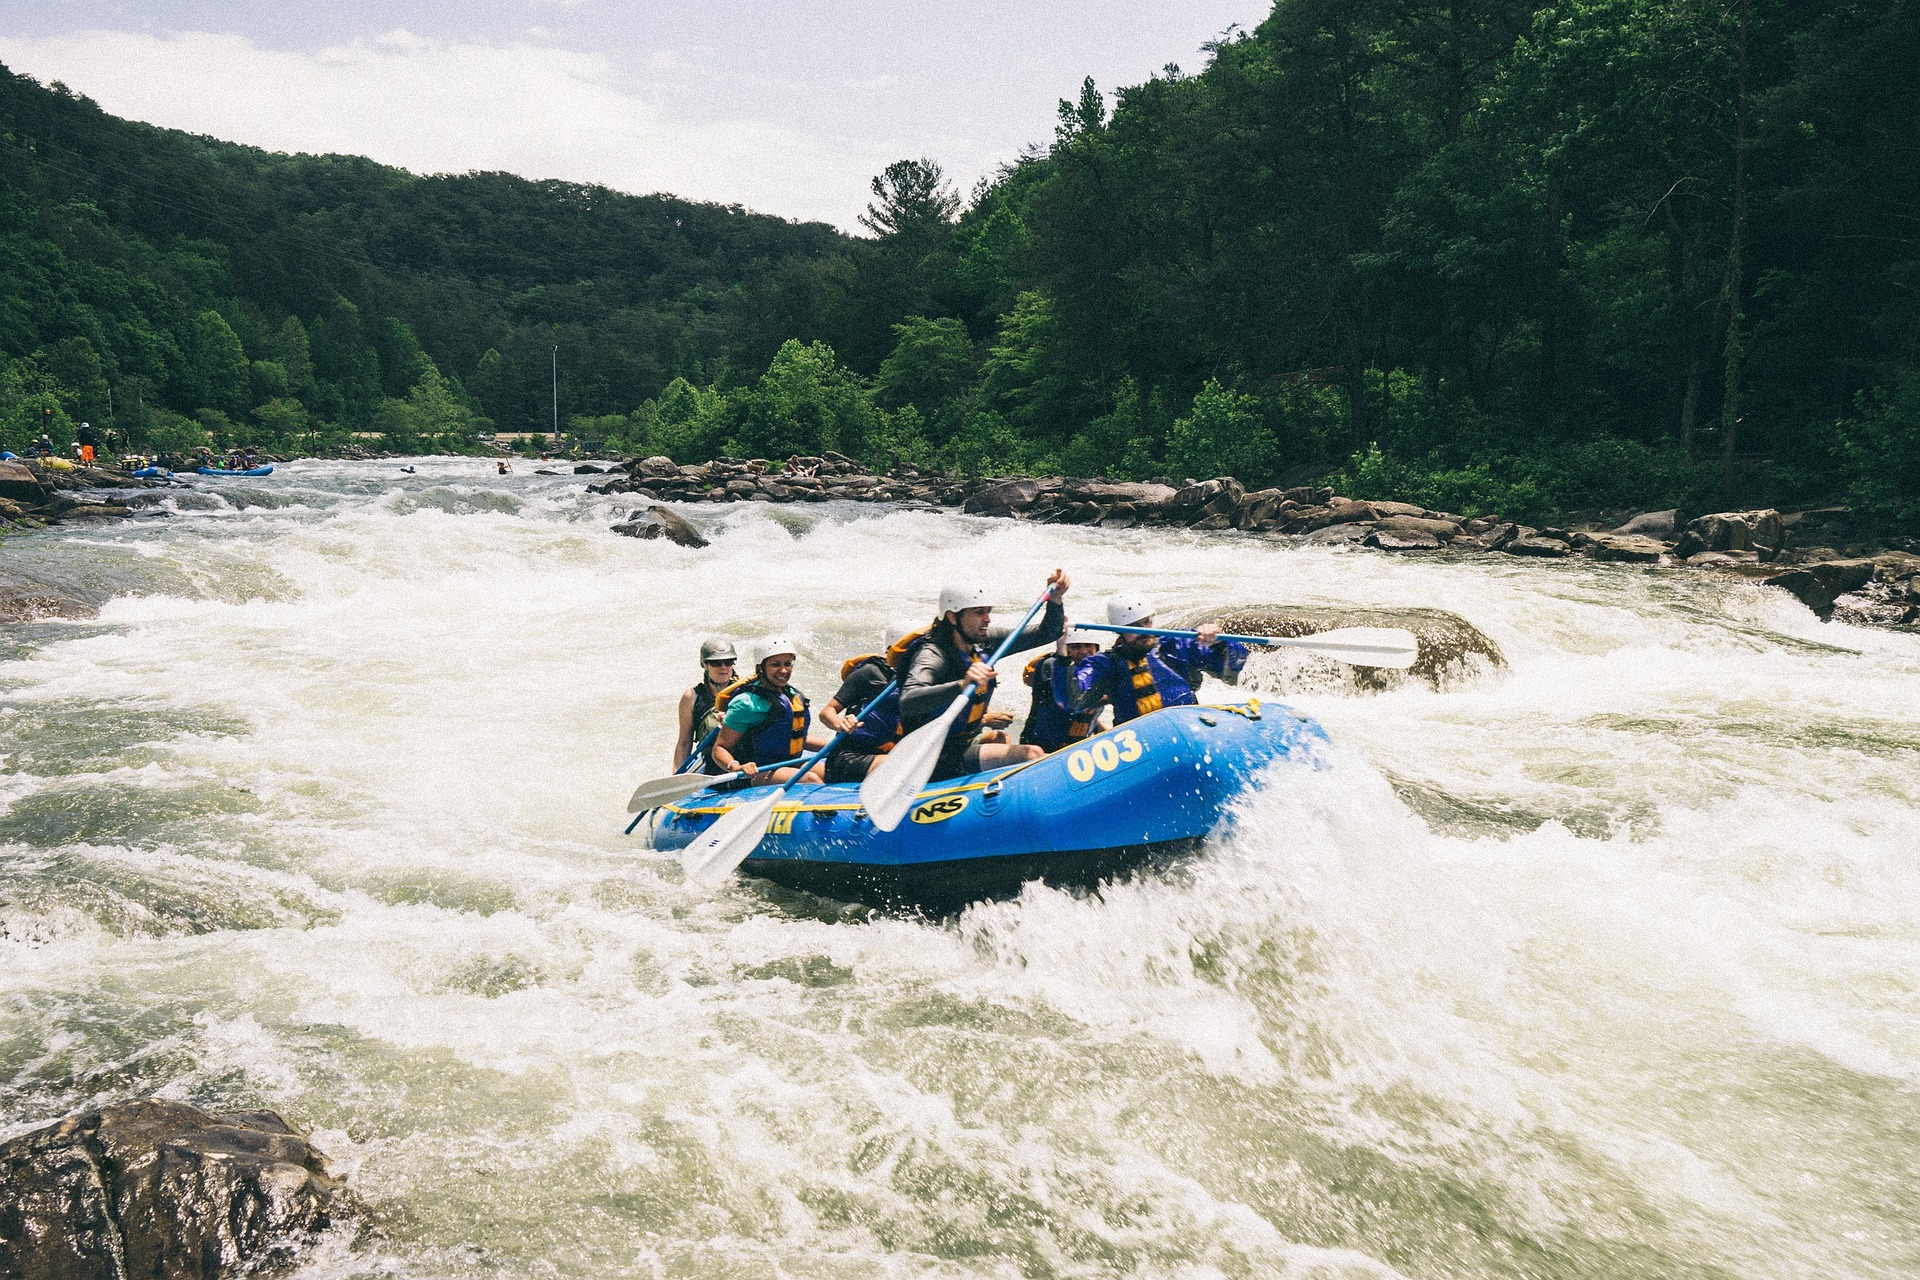 Whitewater Rafting on the Chattahoochee River near Atlanta GA